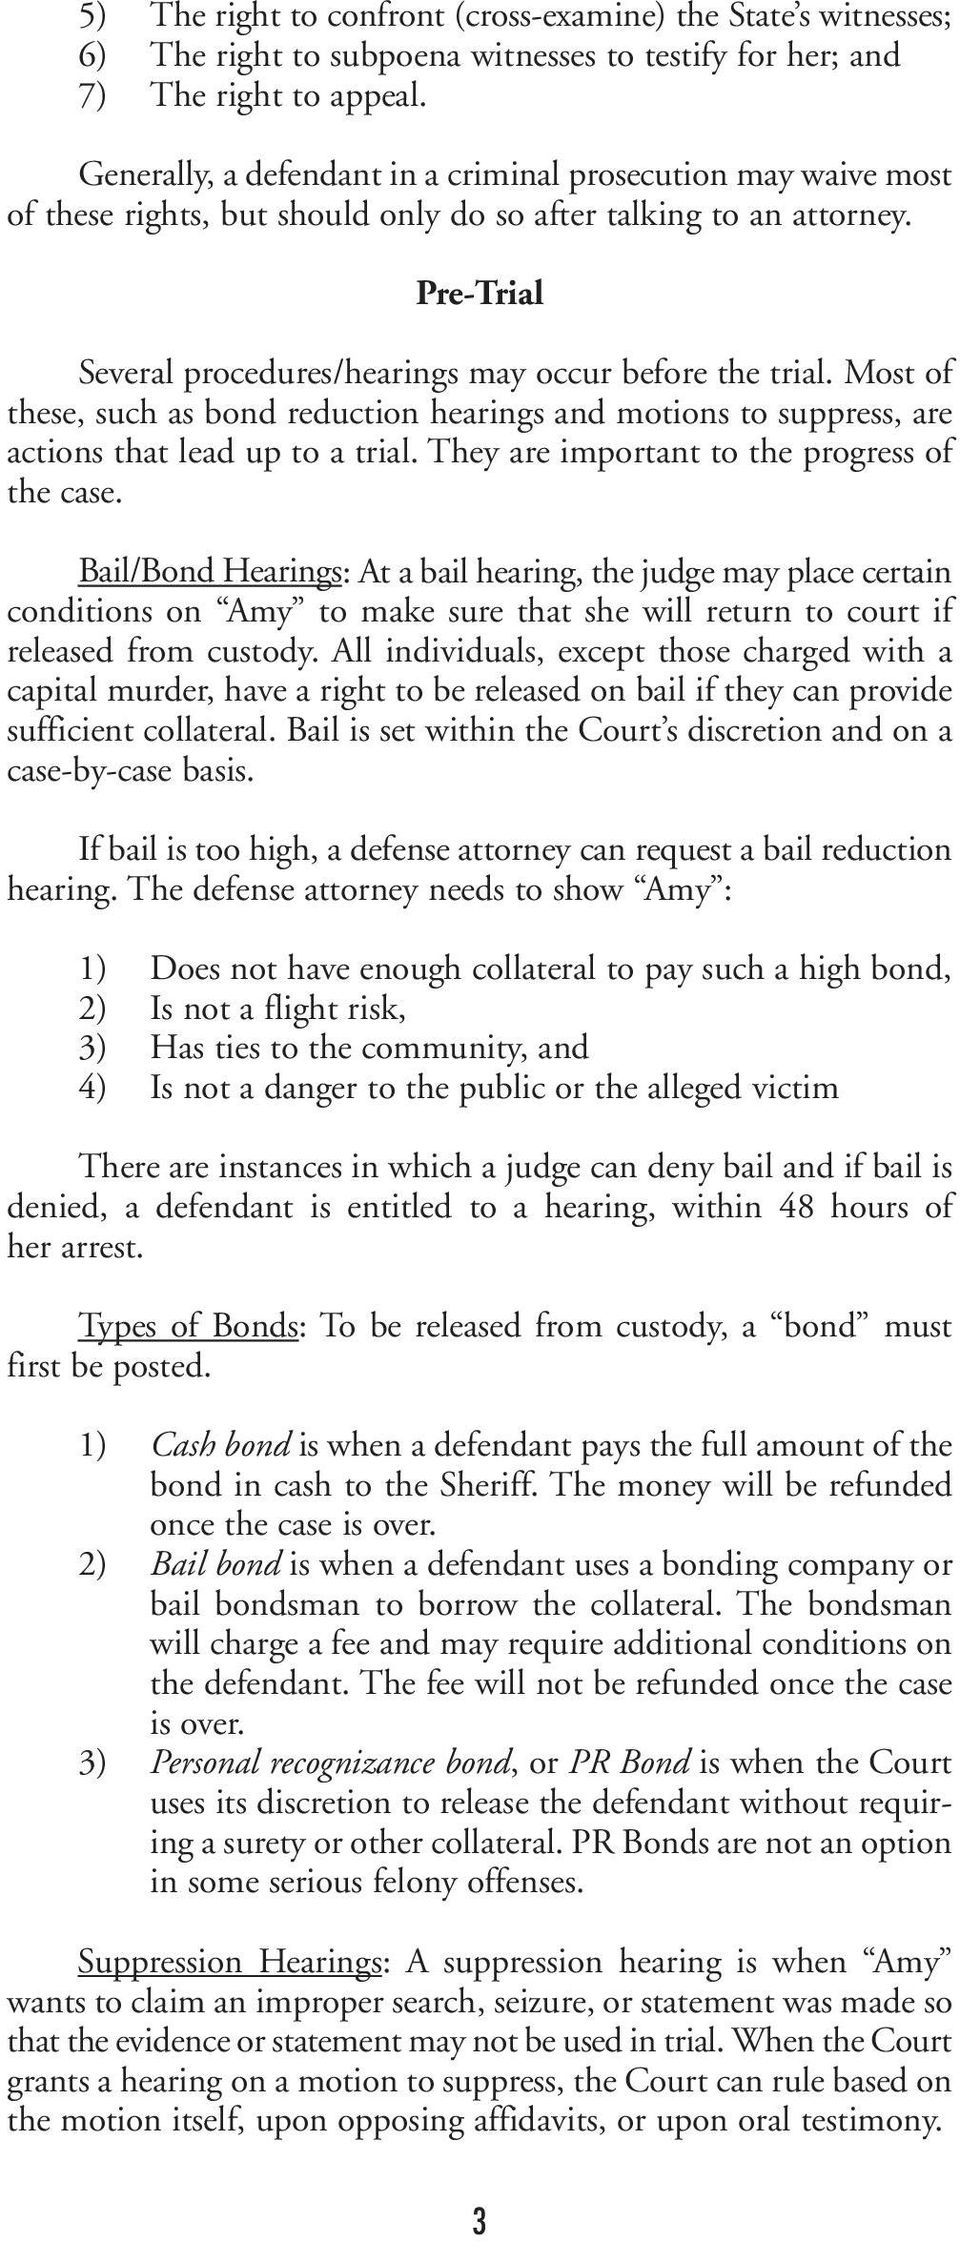 Most of these, such as bond reduction hearings and motions to suppress, are actions that lead up to a trial. They are important to the progress of the case.